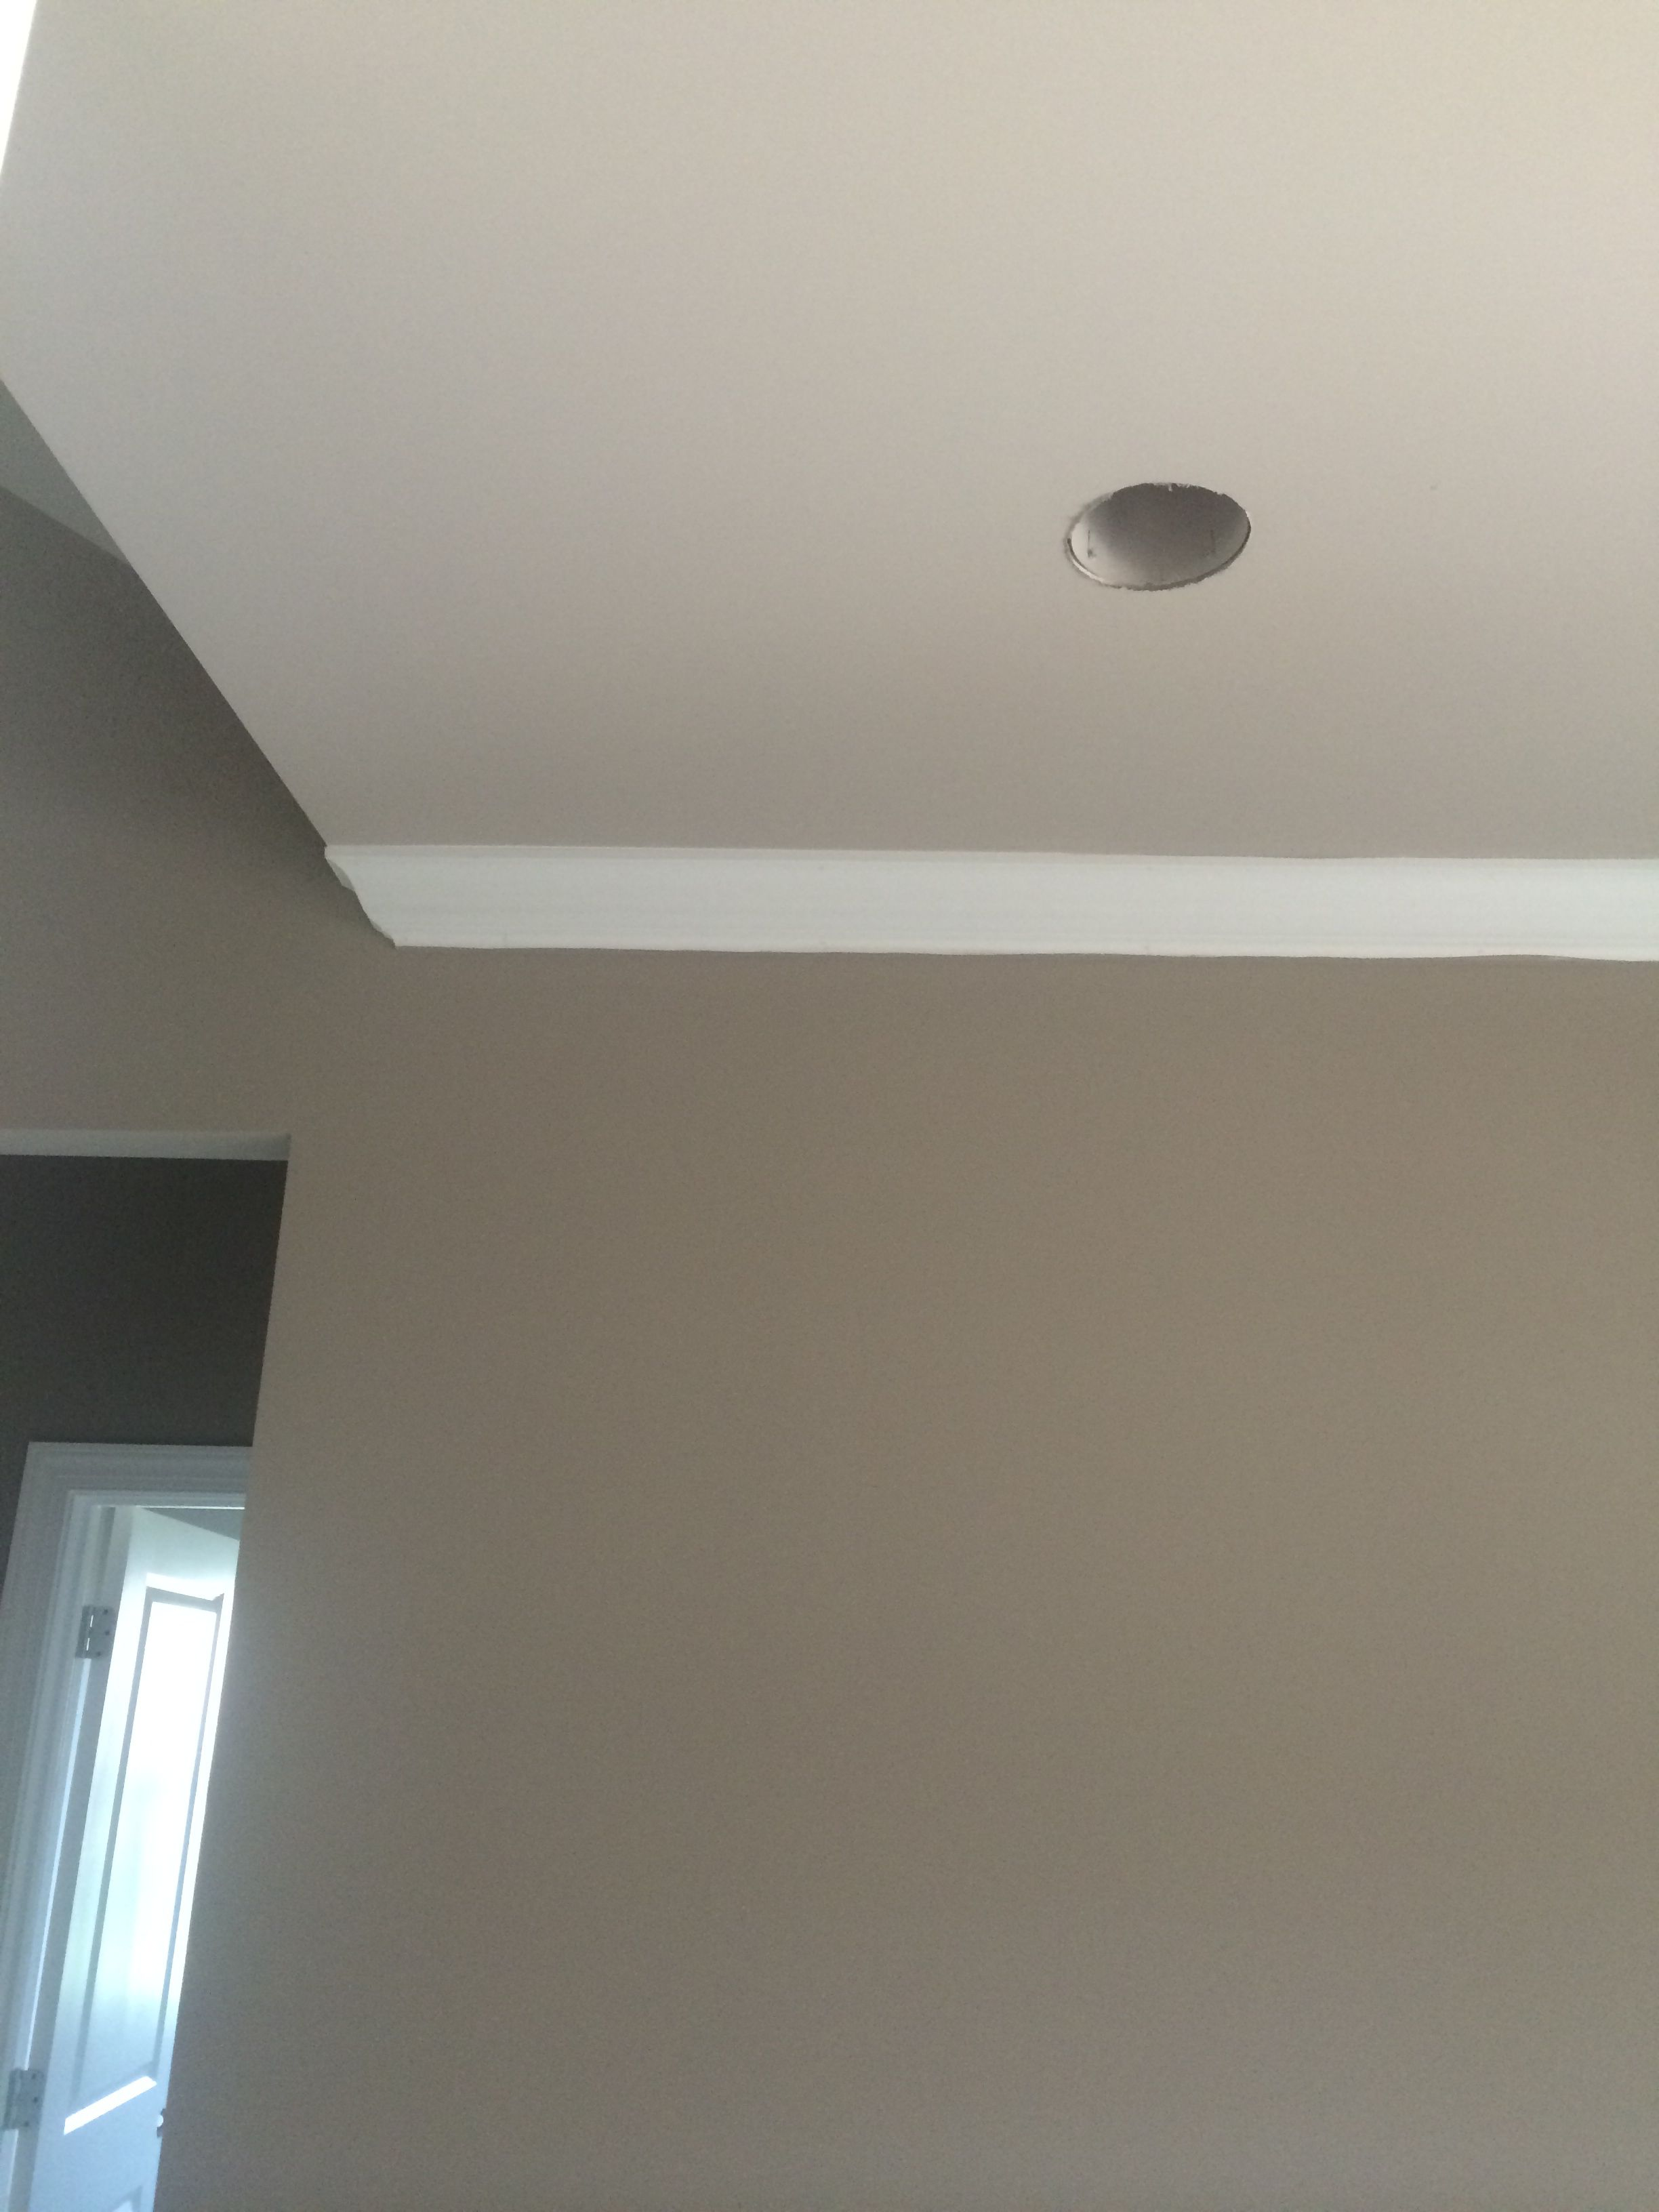 Sherwin williams perfect greige ideas pictures remodel - Sherwin Williams Mega Greige With Sherwin Williams Anew Gray Ceiling